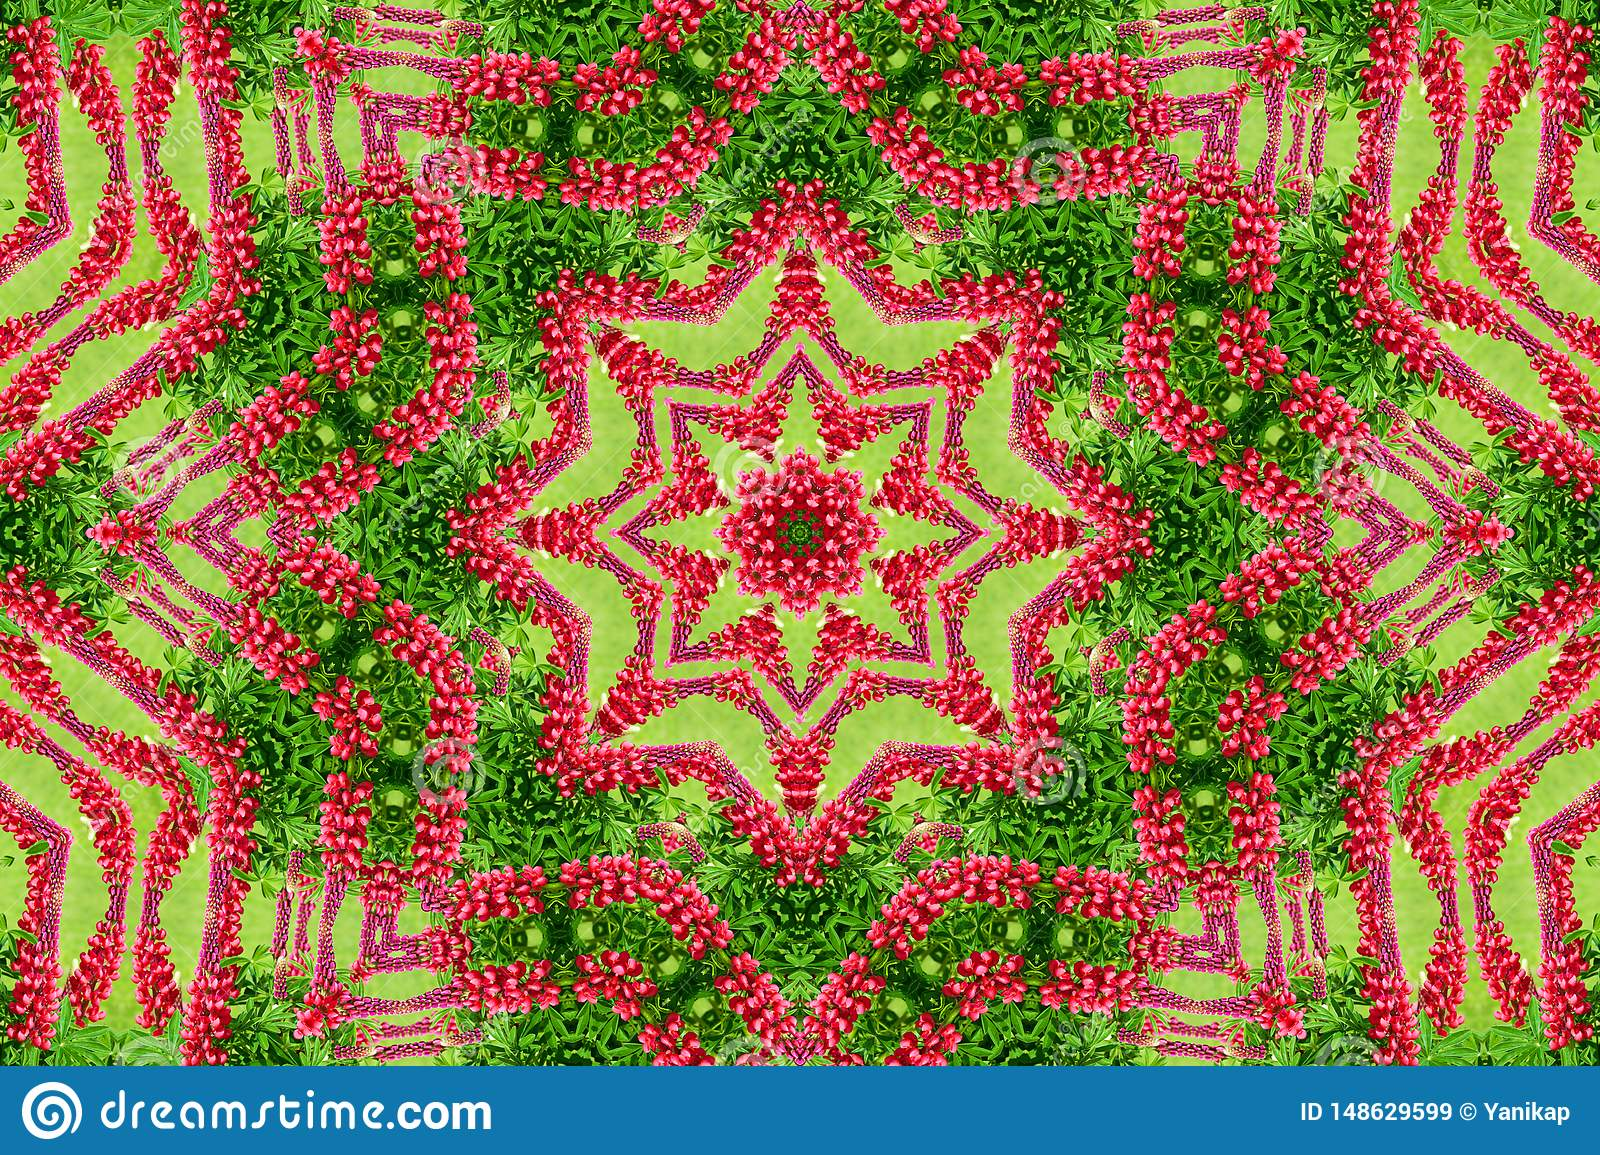 Abstract background of flower pattern of a kaleidoscope